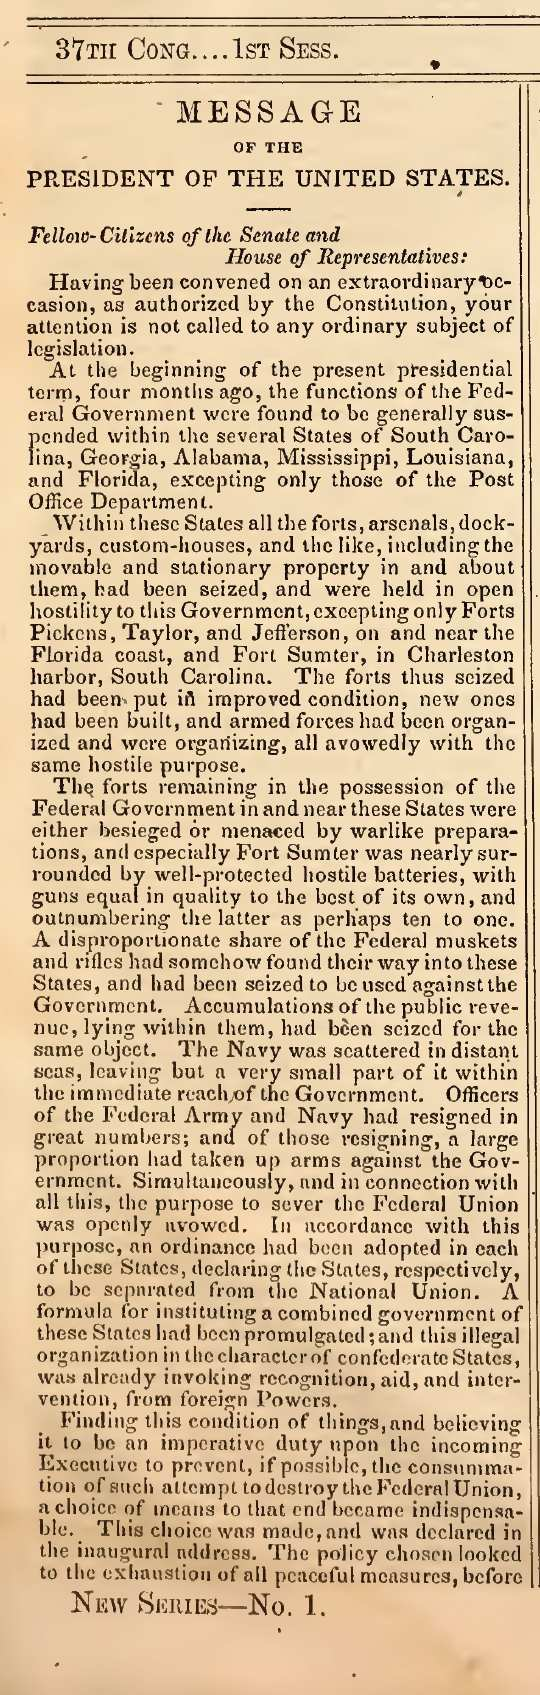 Congressional Globe message from President Lincoln July 1 1861